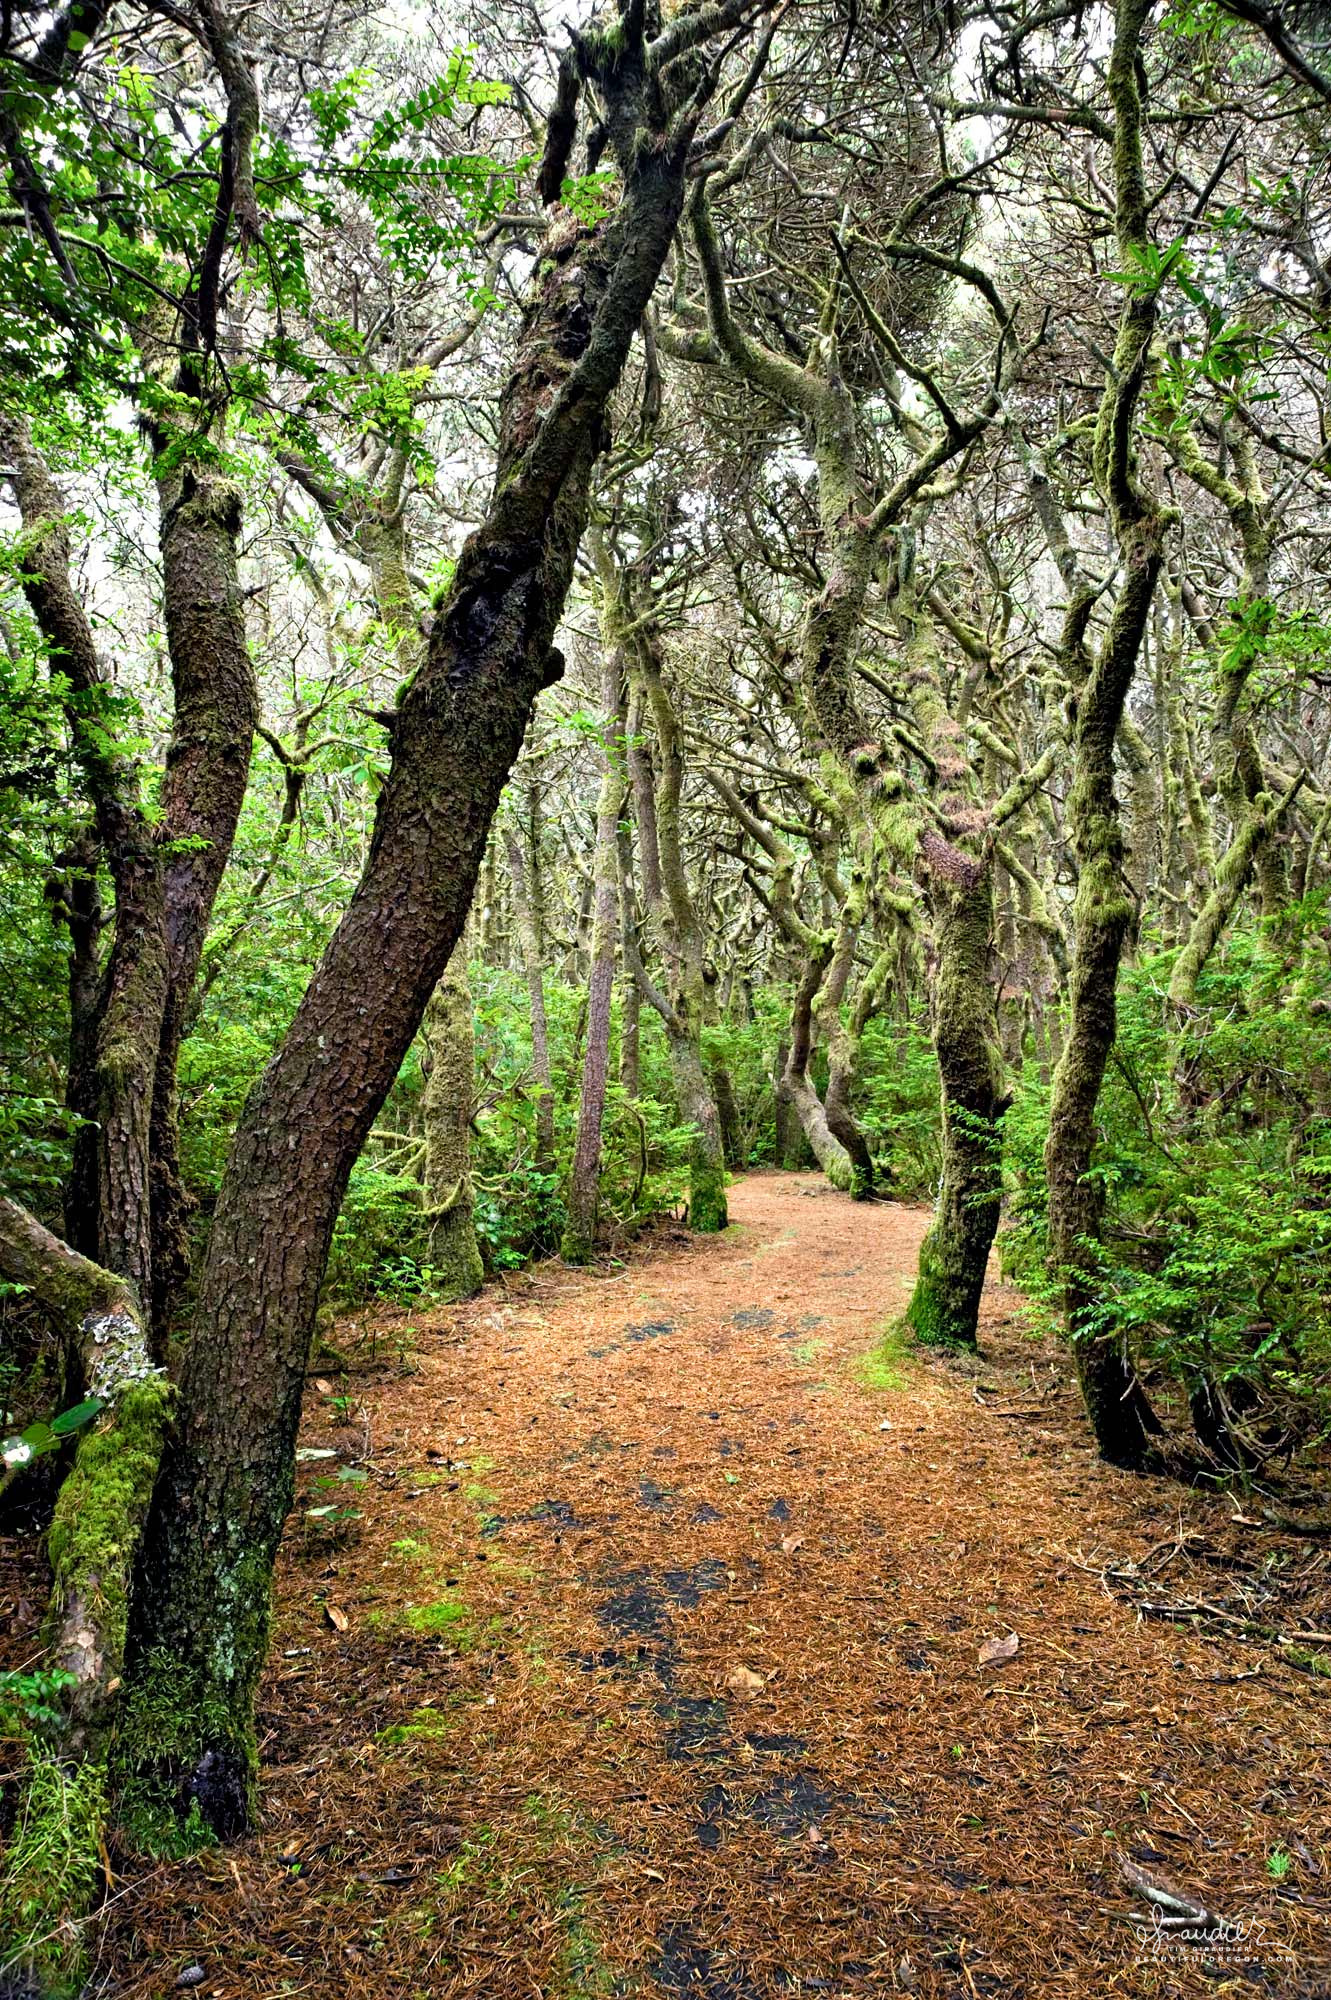 A footpath winds its way through a dense forest of Shore Pine (Pinus contorta contorta) at Washburne State Park, Oregon Central Coast.